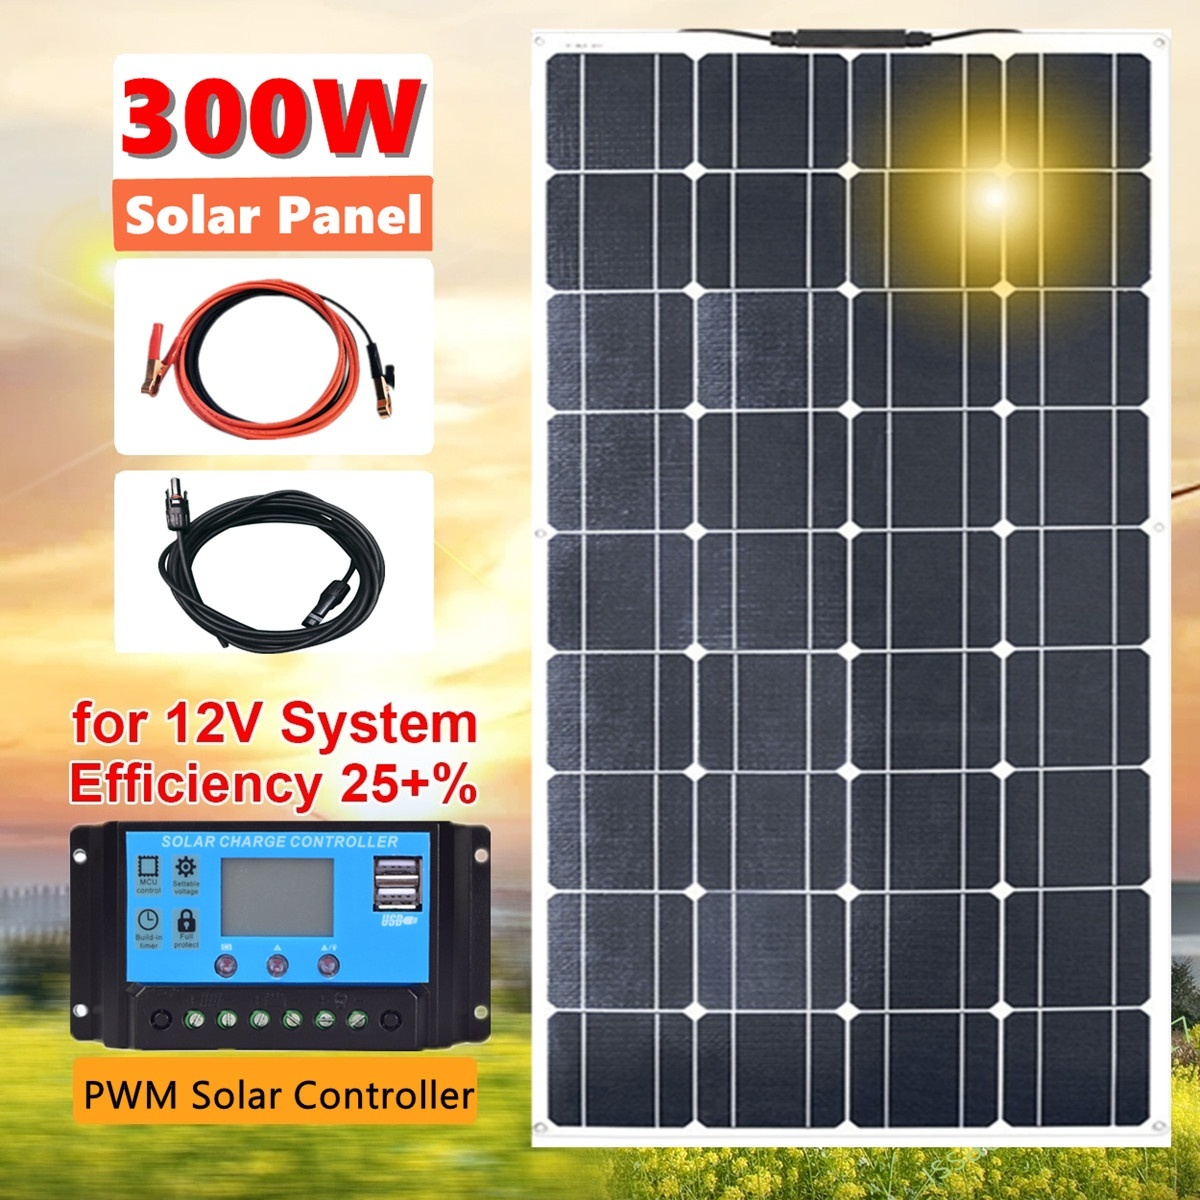 New 300W 18V Flexible Solar Panel Module Optional Controller Module Car RV Boat Home Roof Vans Camping SUV For 12V Solar Charger